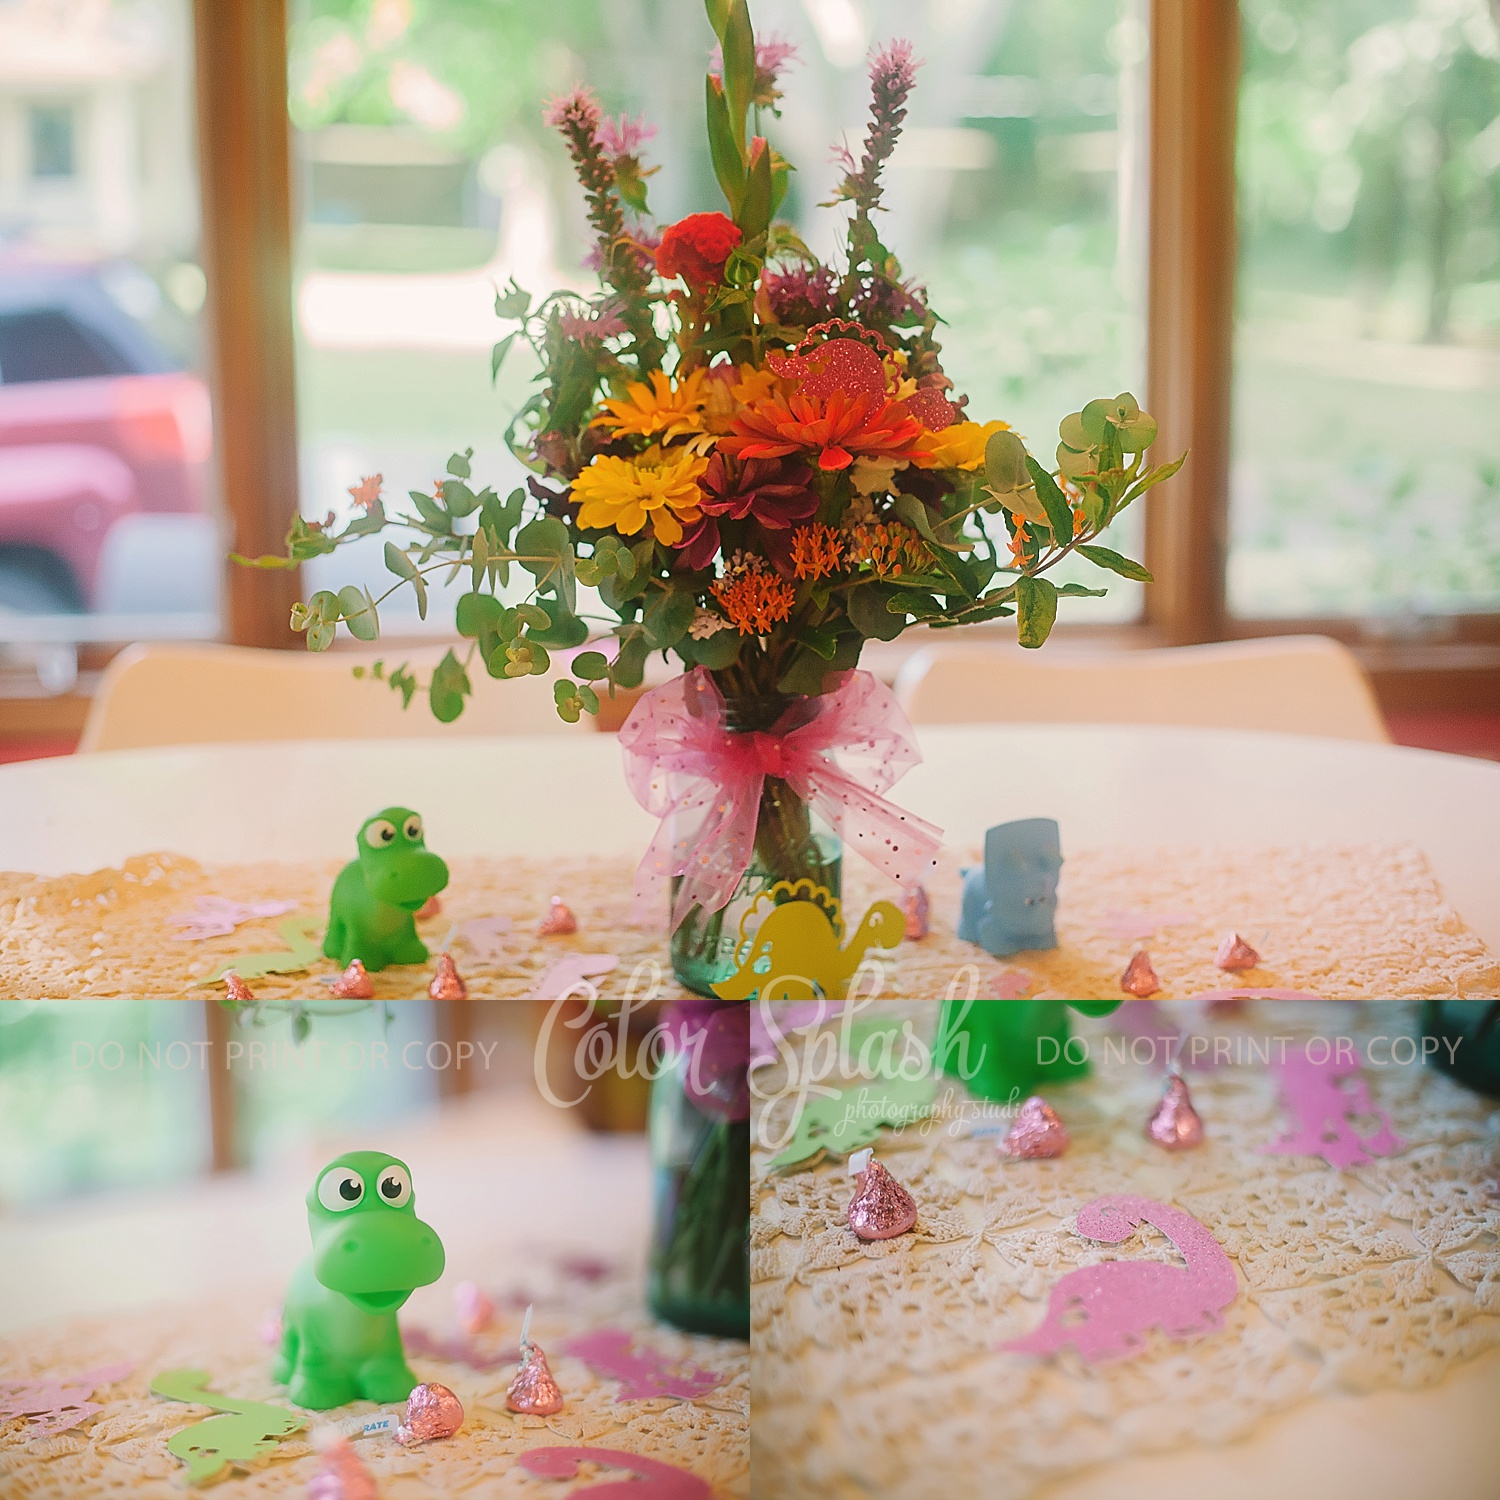 Izzy Turns 2  Girl Dinosaur Birthday – Color Splash